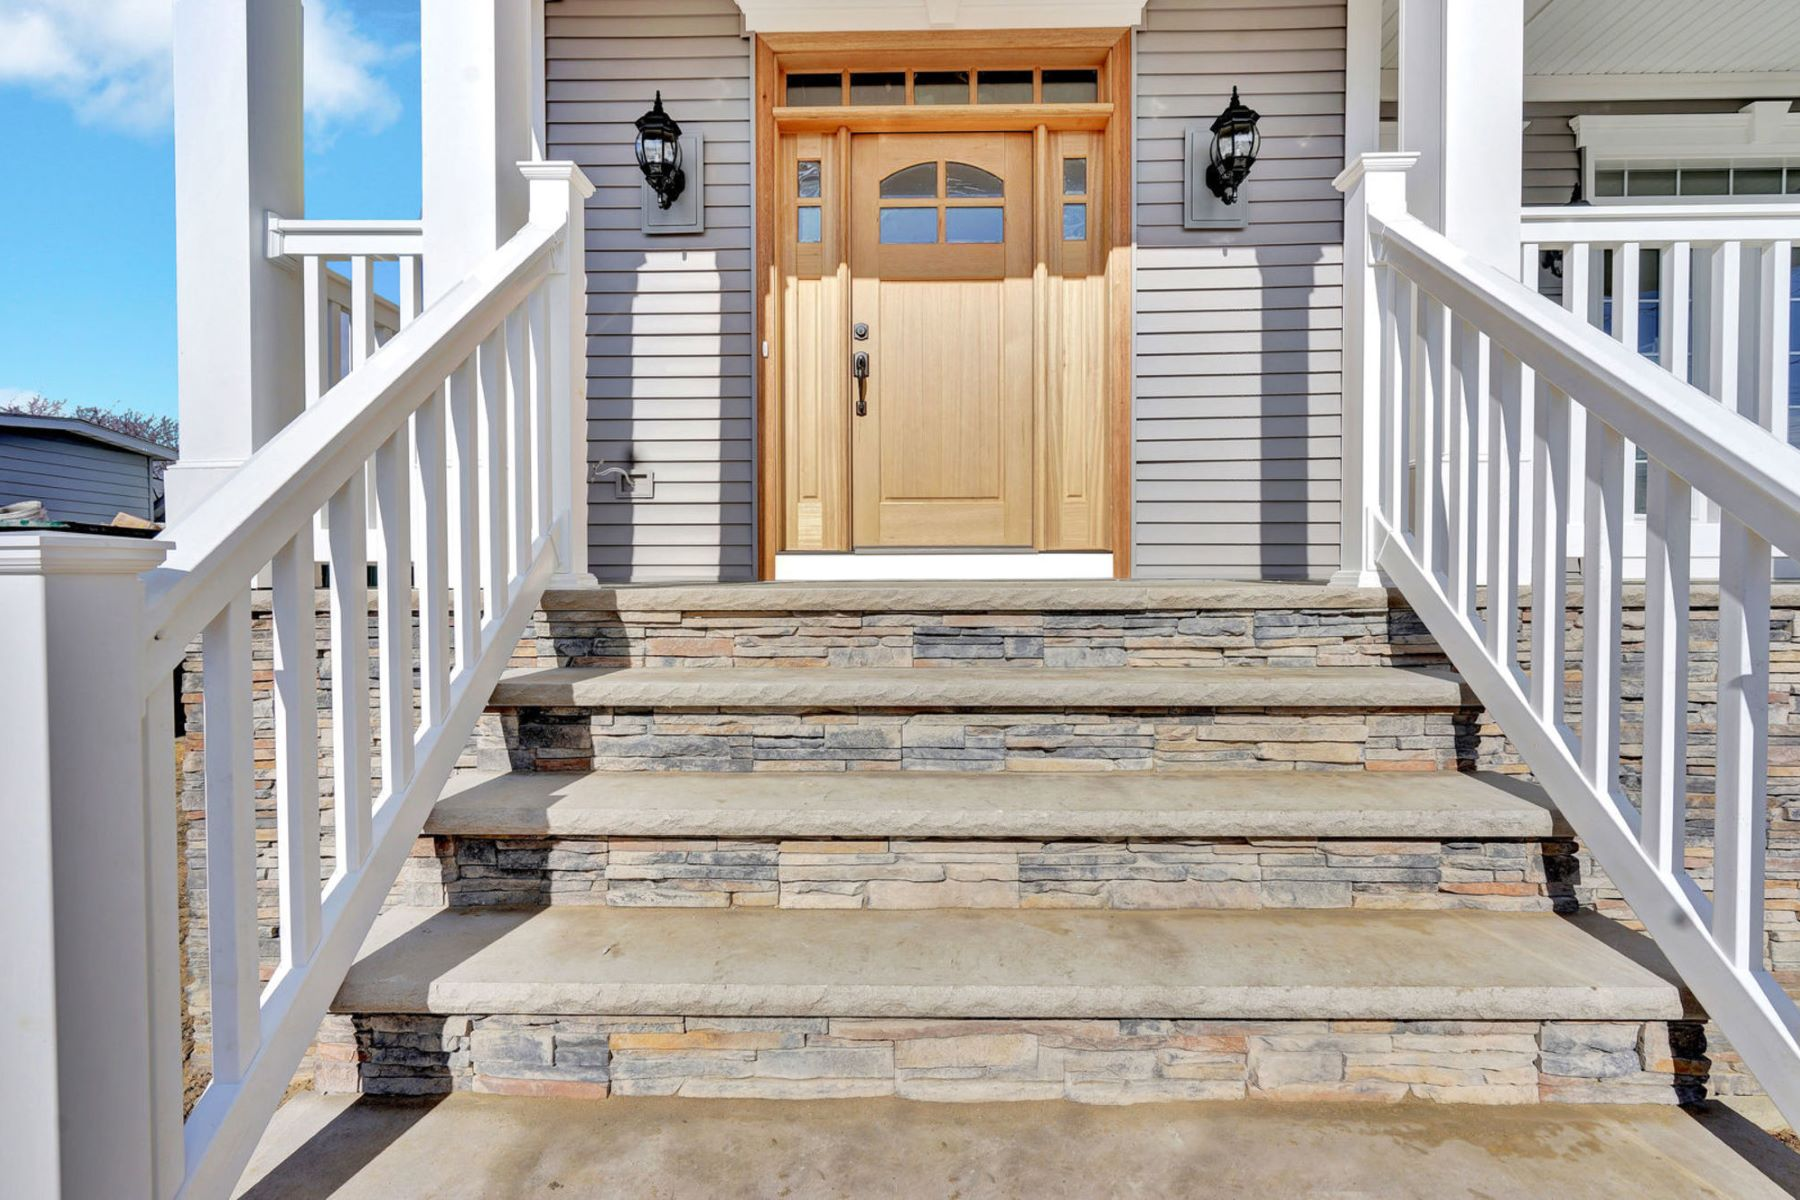 Single Family Home for Sale at New Construction With Open Floor Plan 512 16th Ave, Belmar, New Jersey 07719 United States